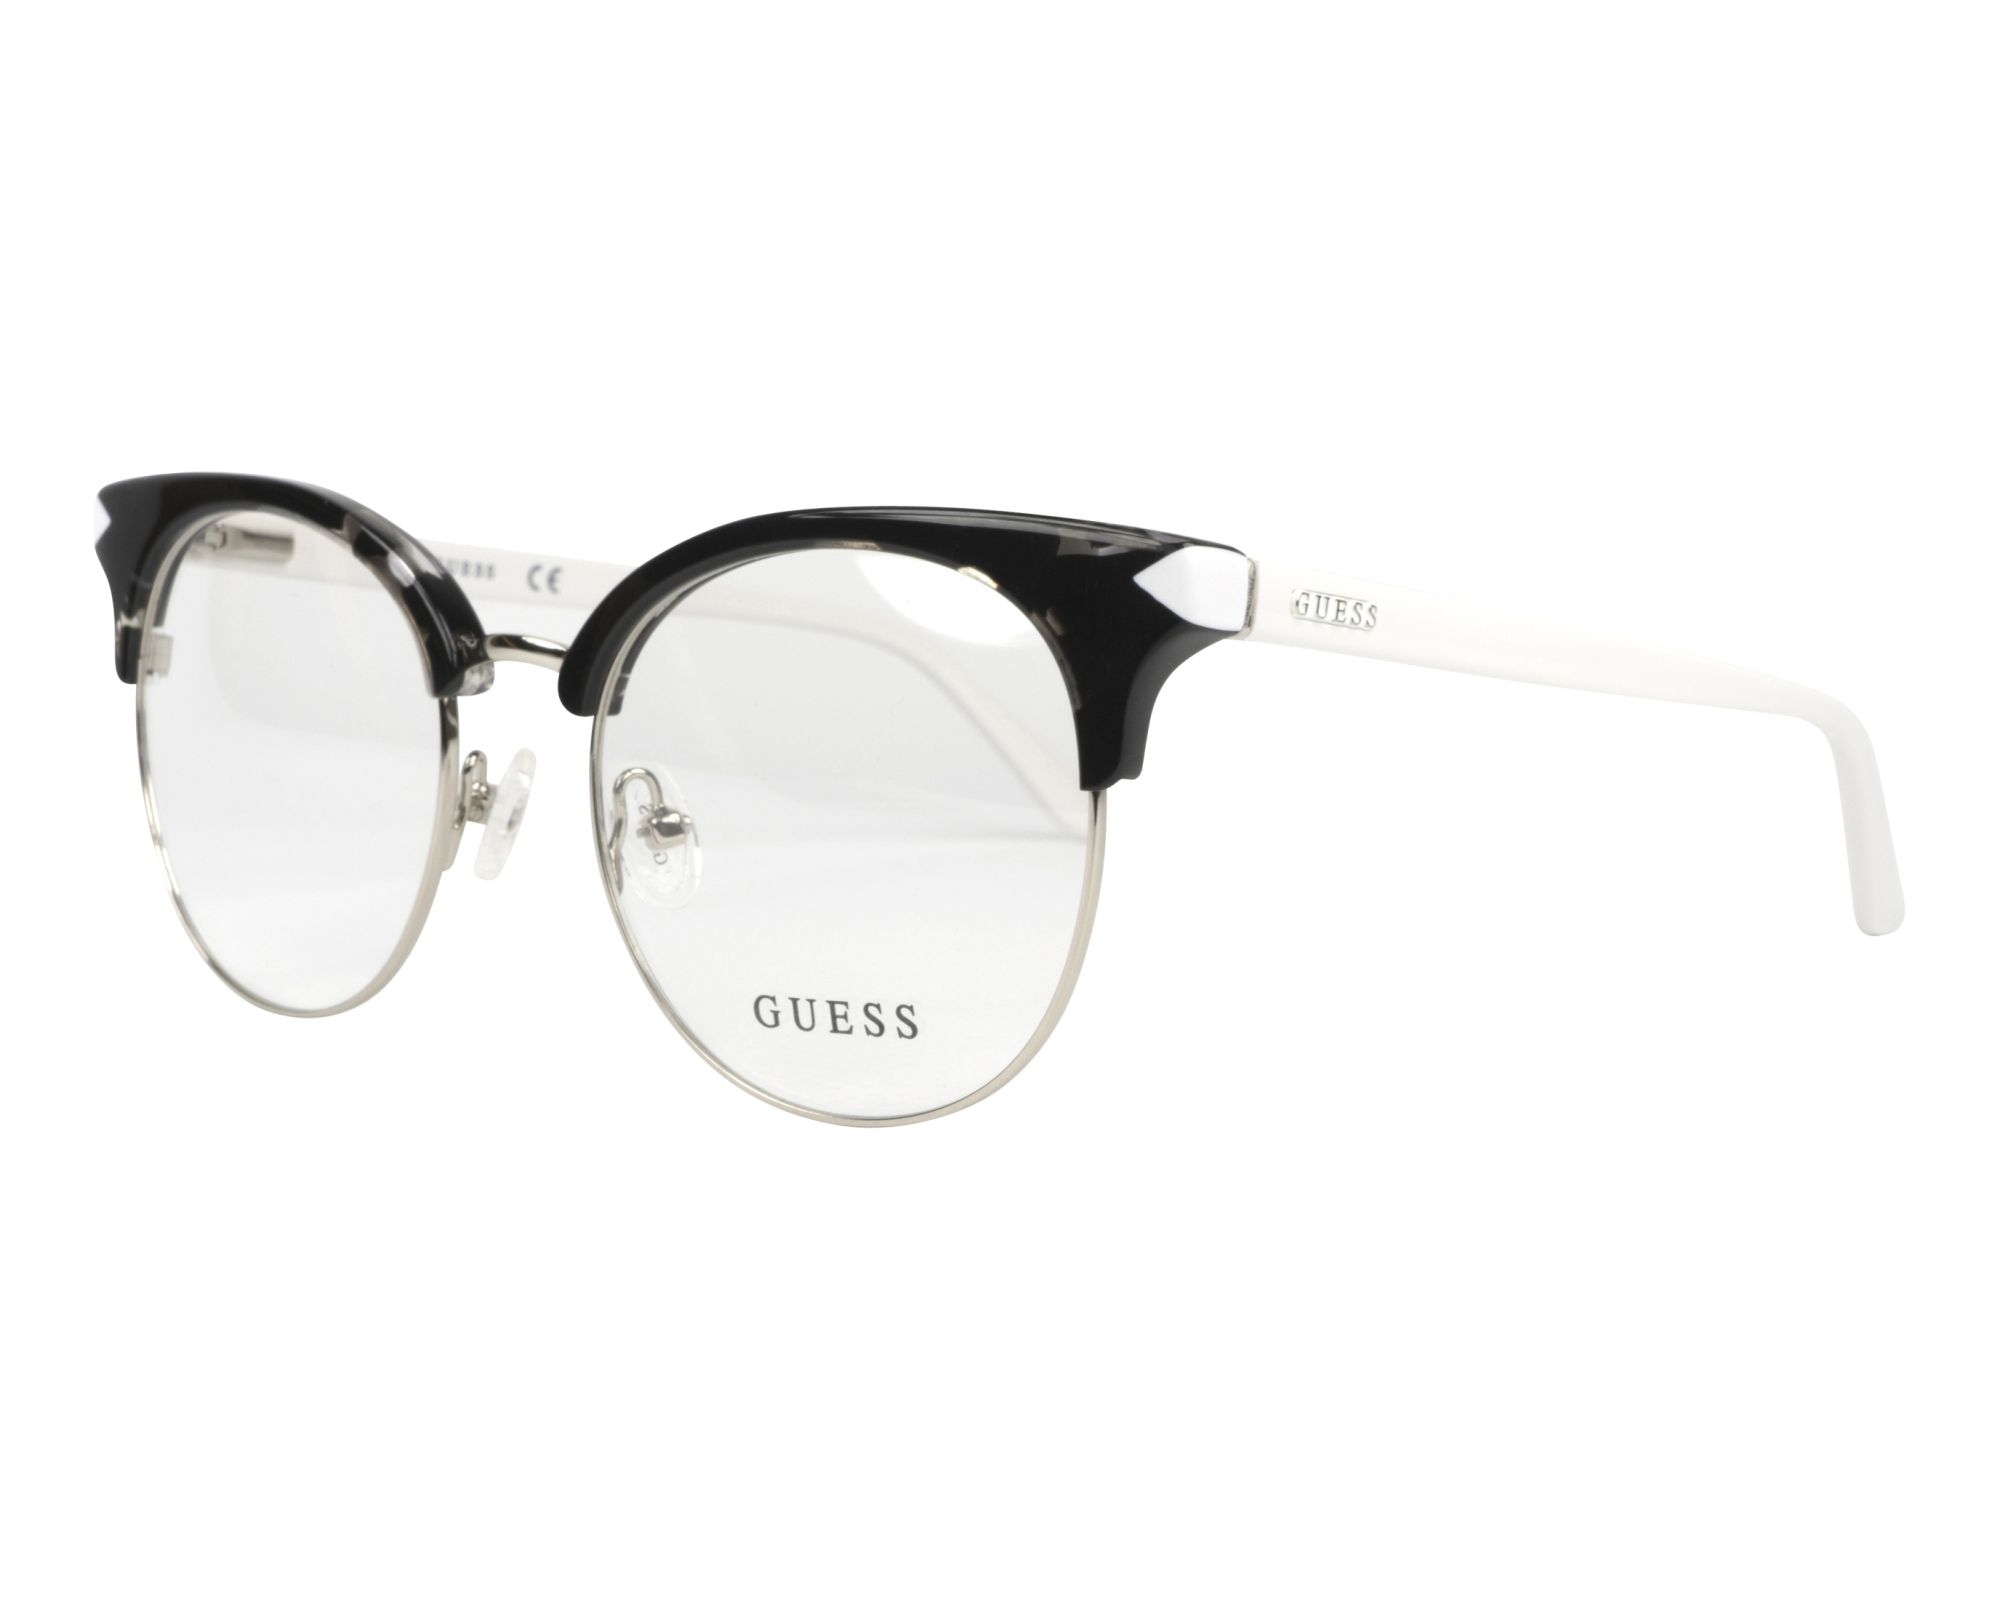 eyeglasses Guess GU-2671-V 001 49-18 Black White profile view